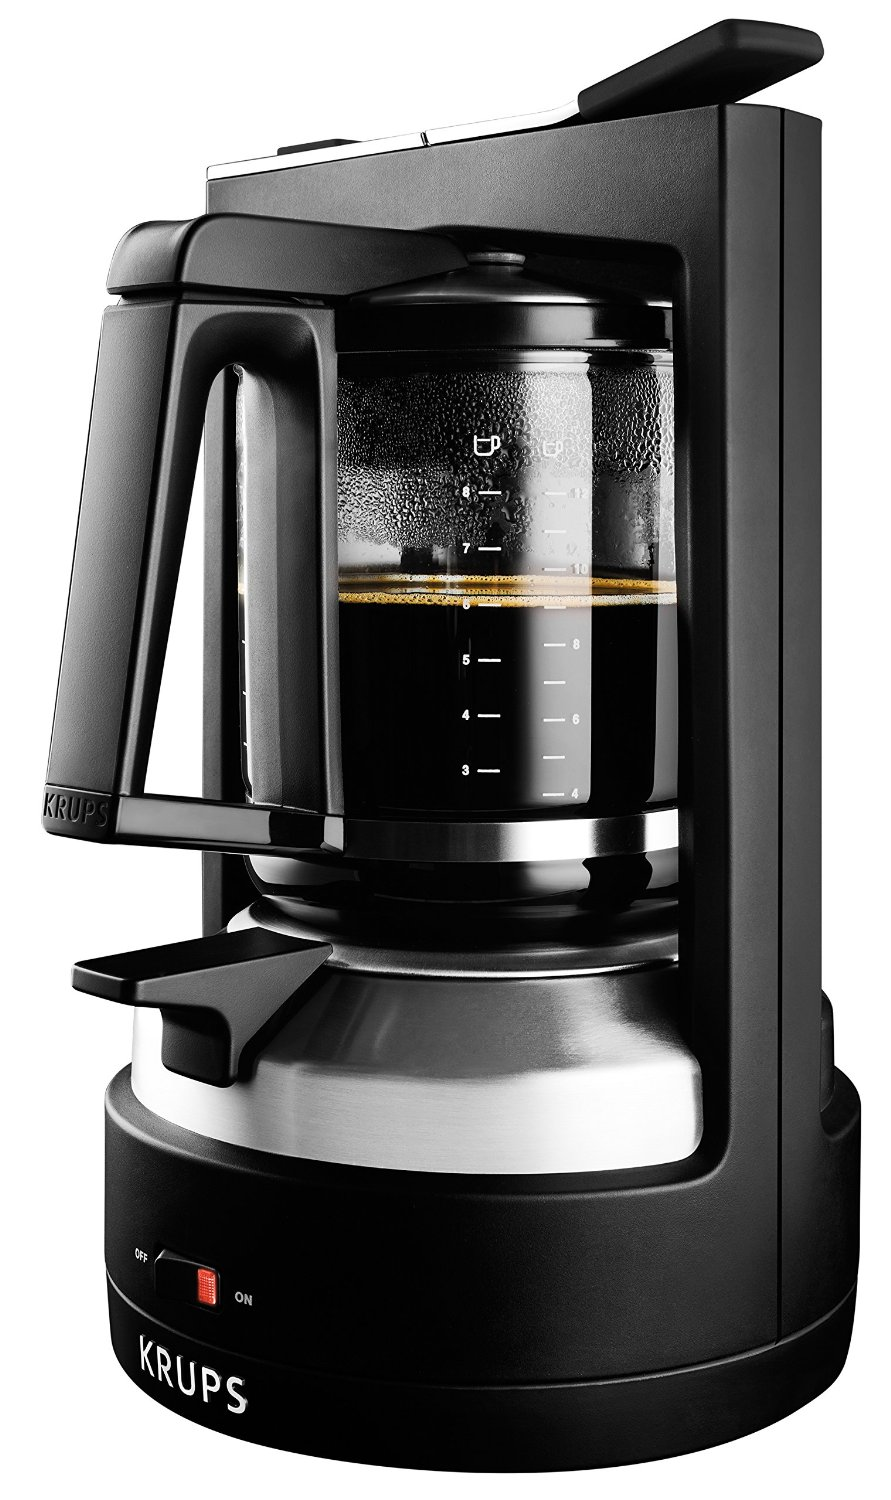 best drip coffee maker krups drip coffee maker